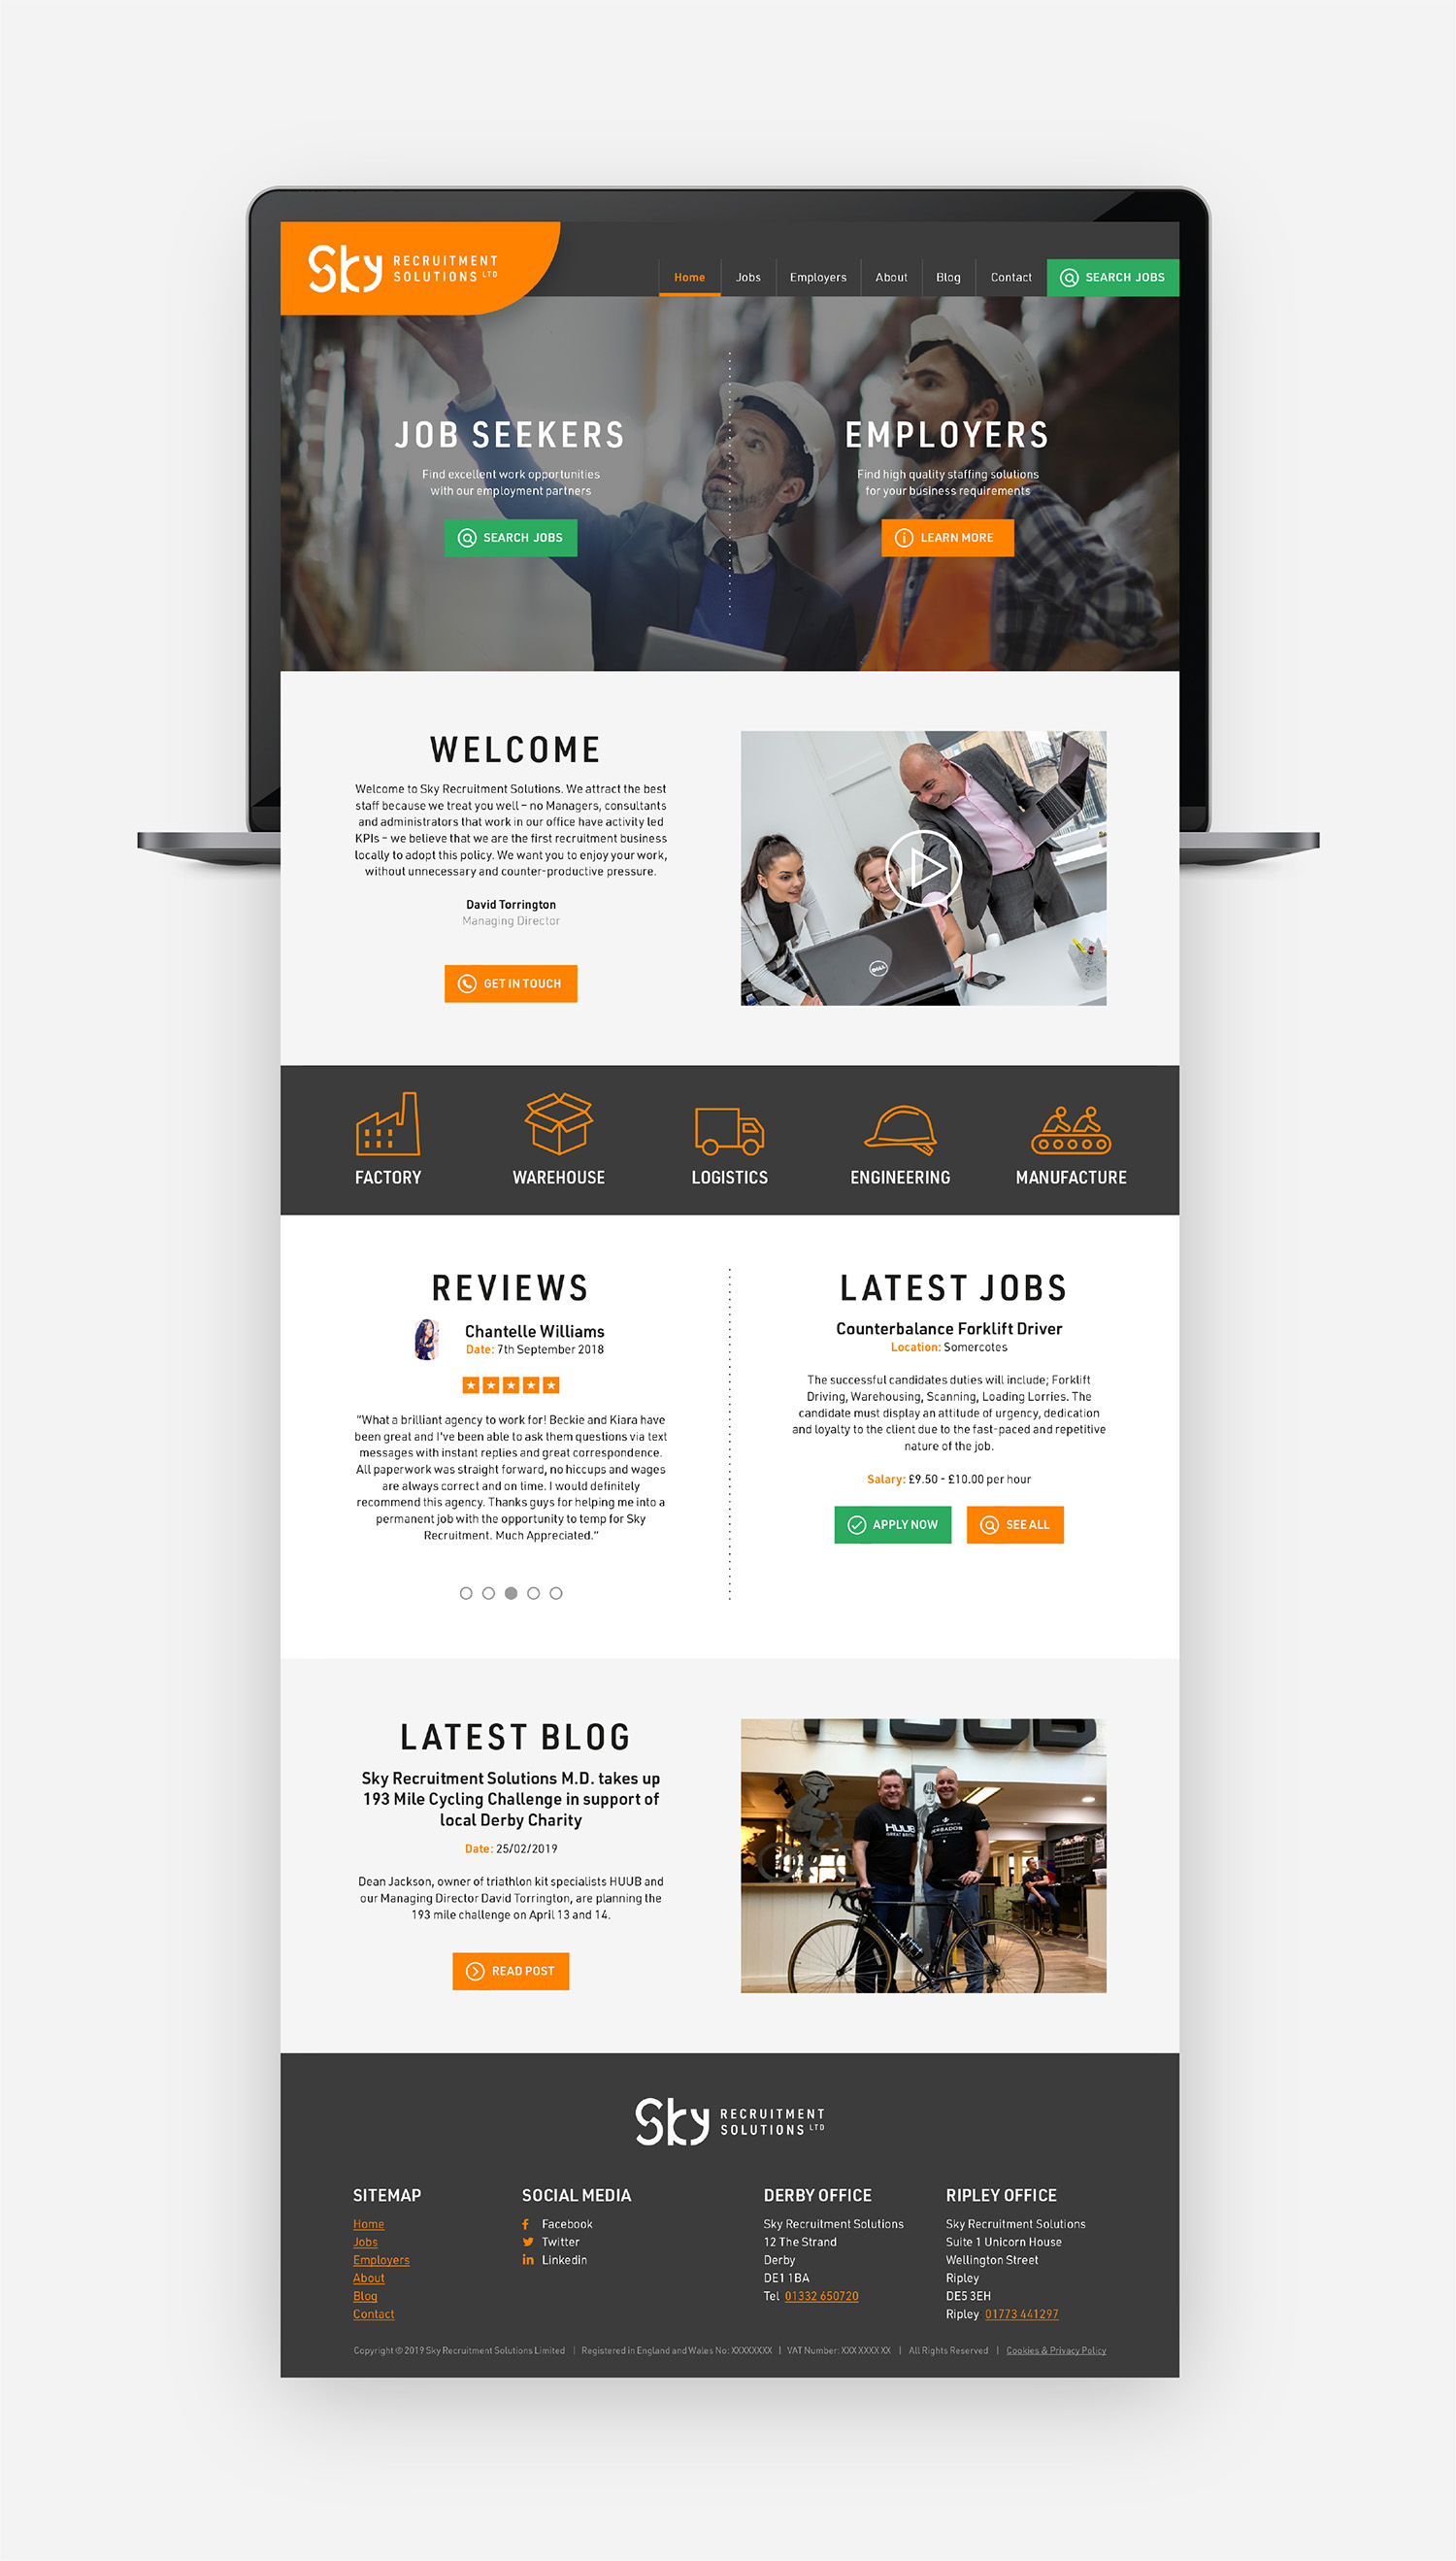 Sky Recruitment Solutions website design - homepage